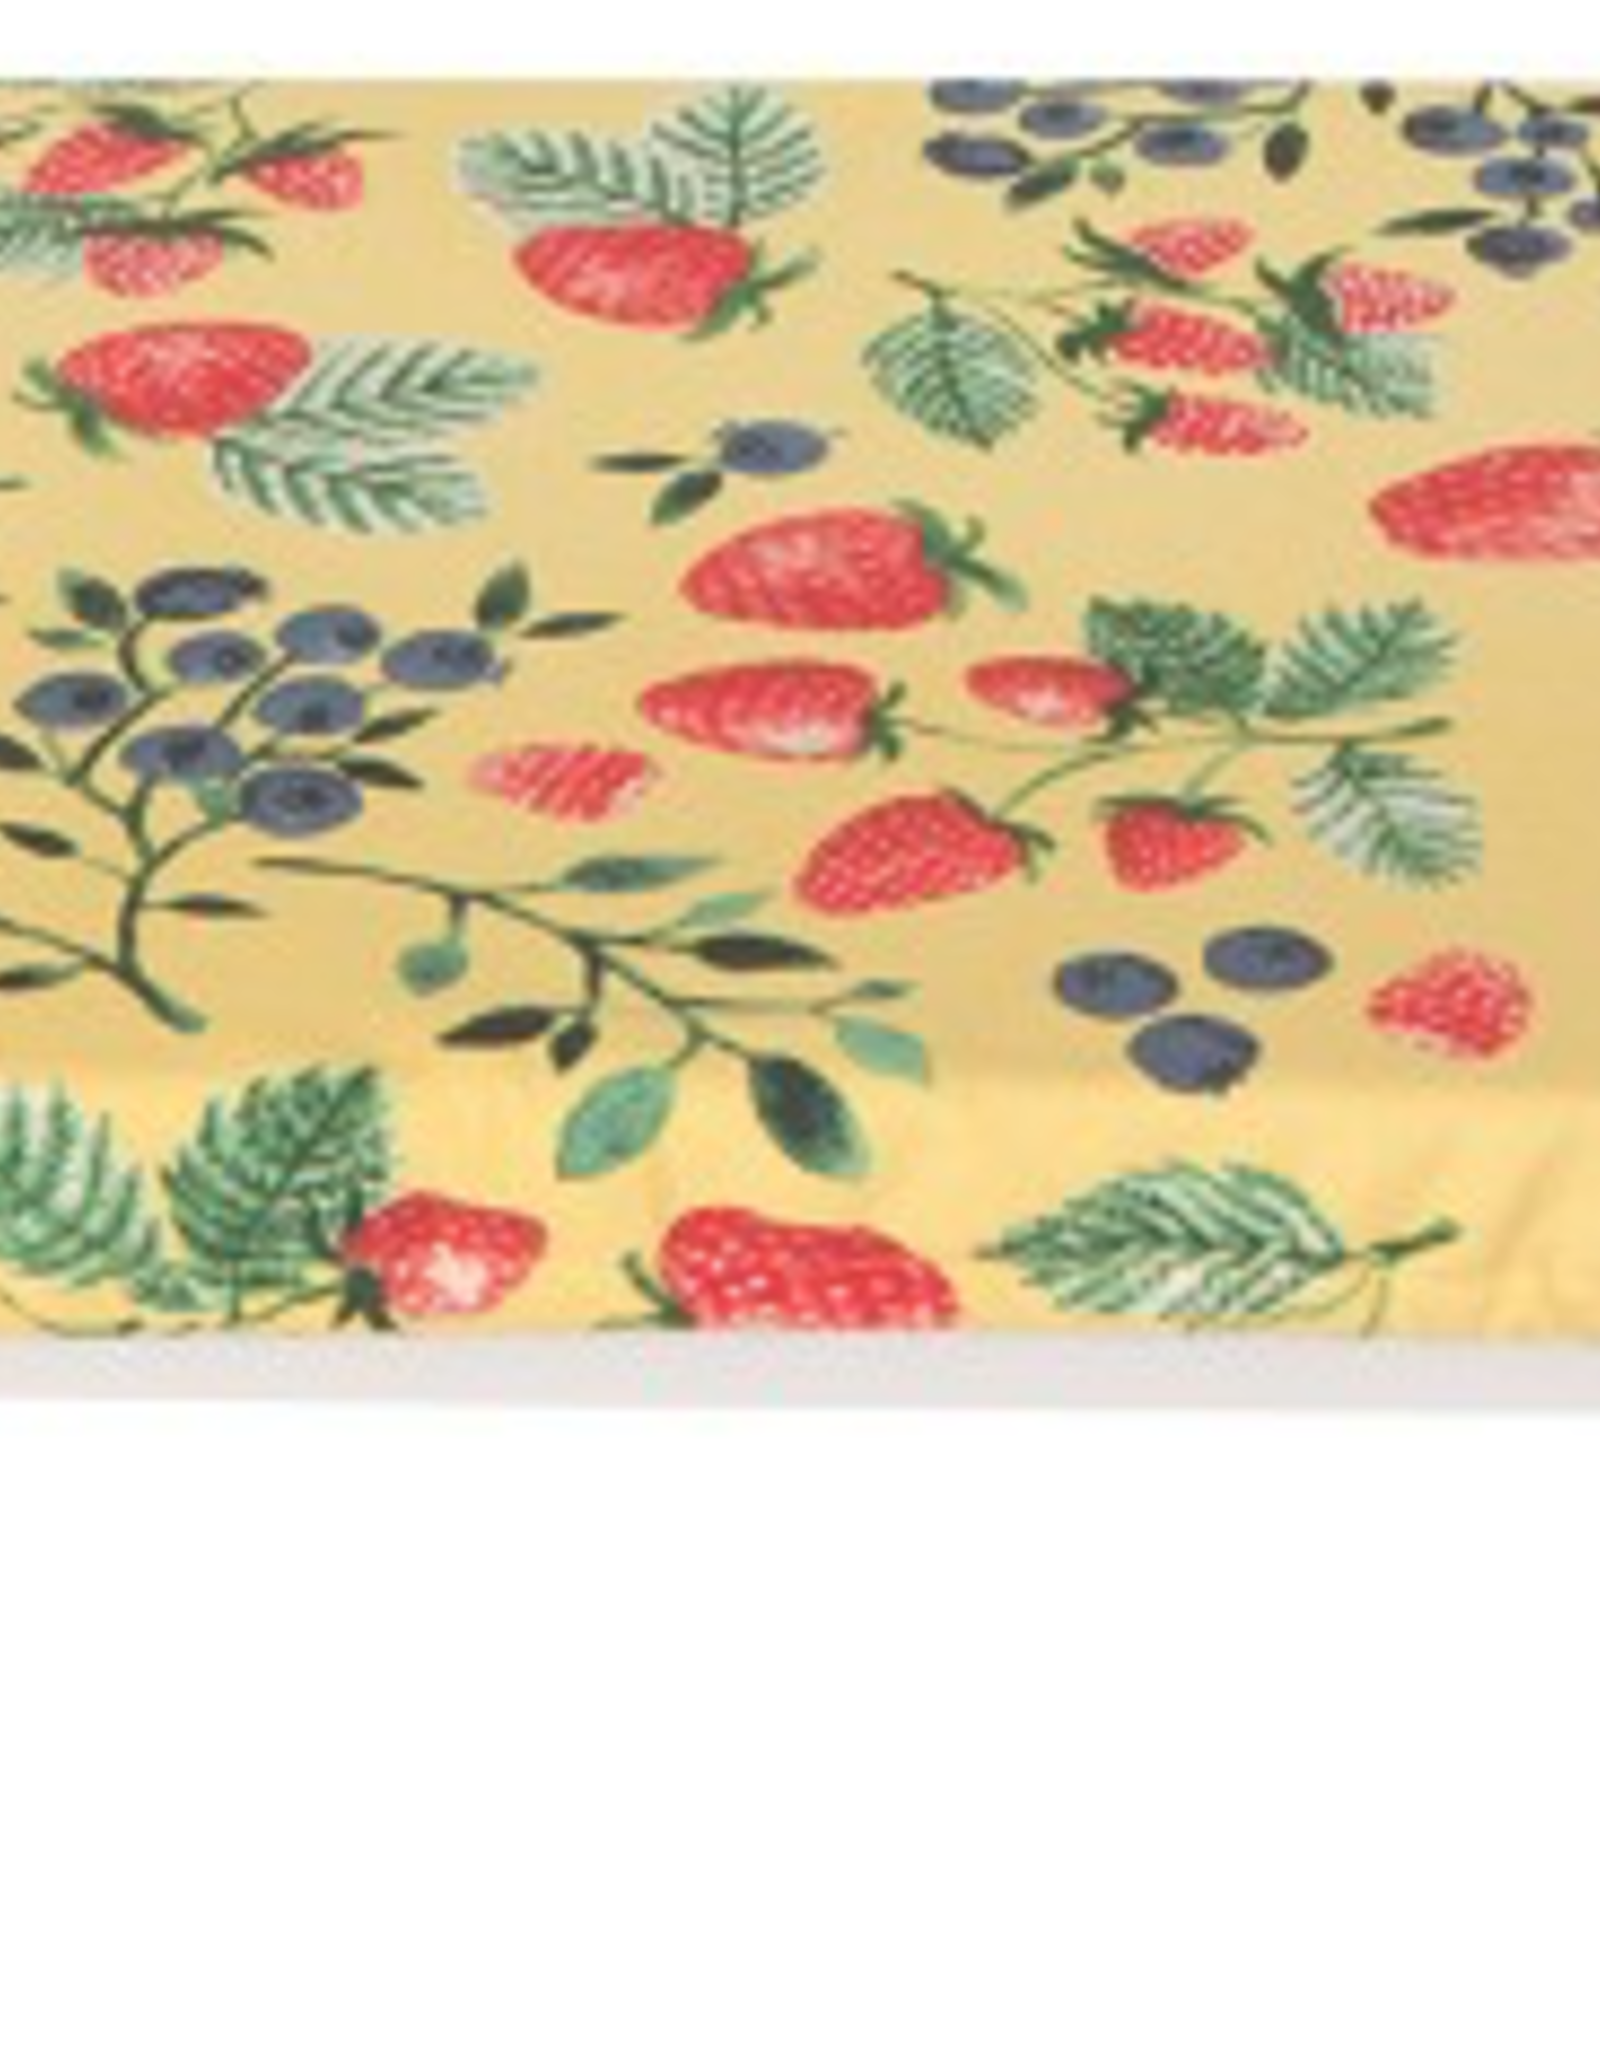 Baking Dish Cover-Berry Patch